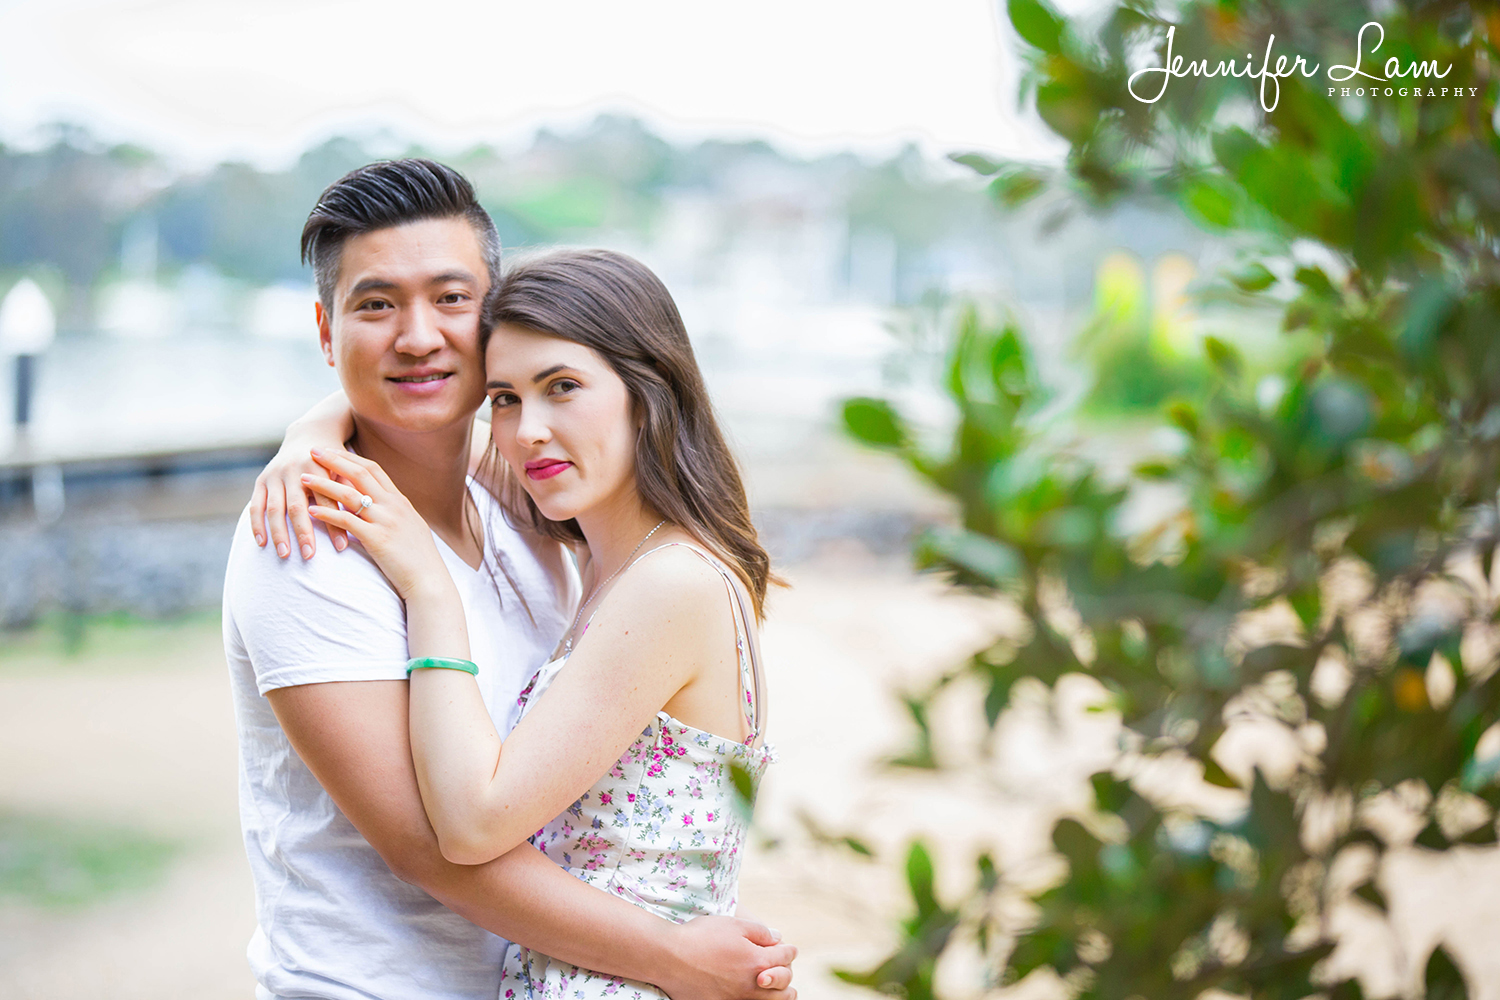 Sydney Pre-Wedding Photography - Jennifer Lam Photography (15).jpg